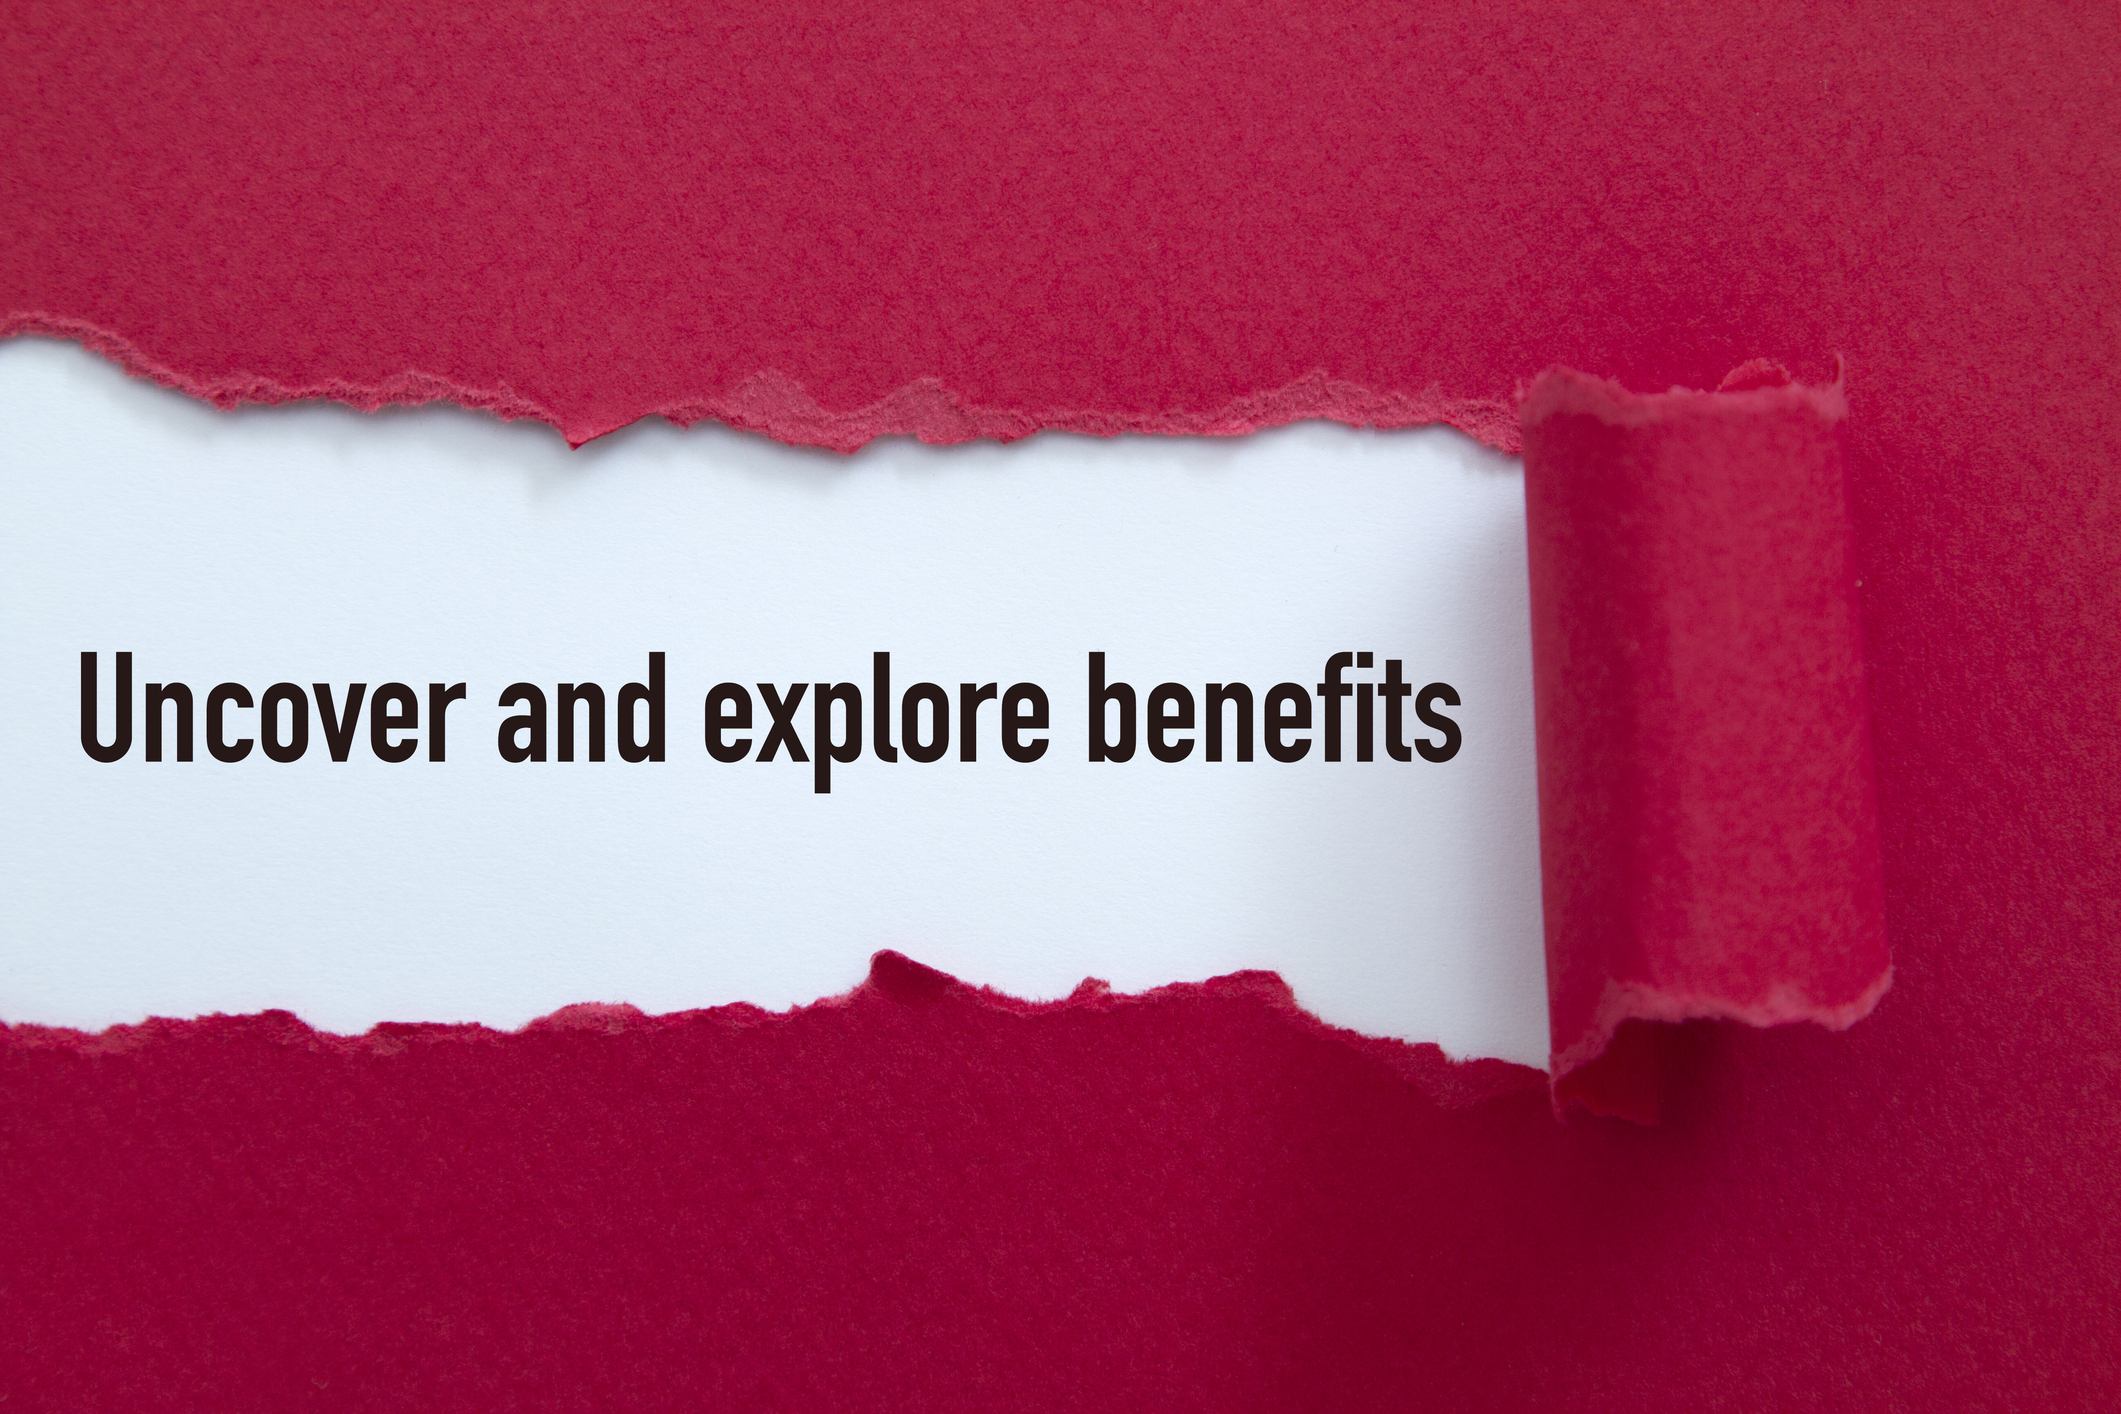 uncover and explore benefits.jpg